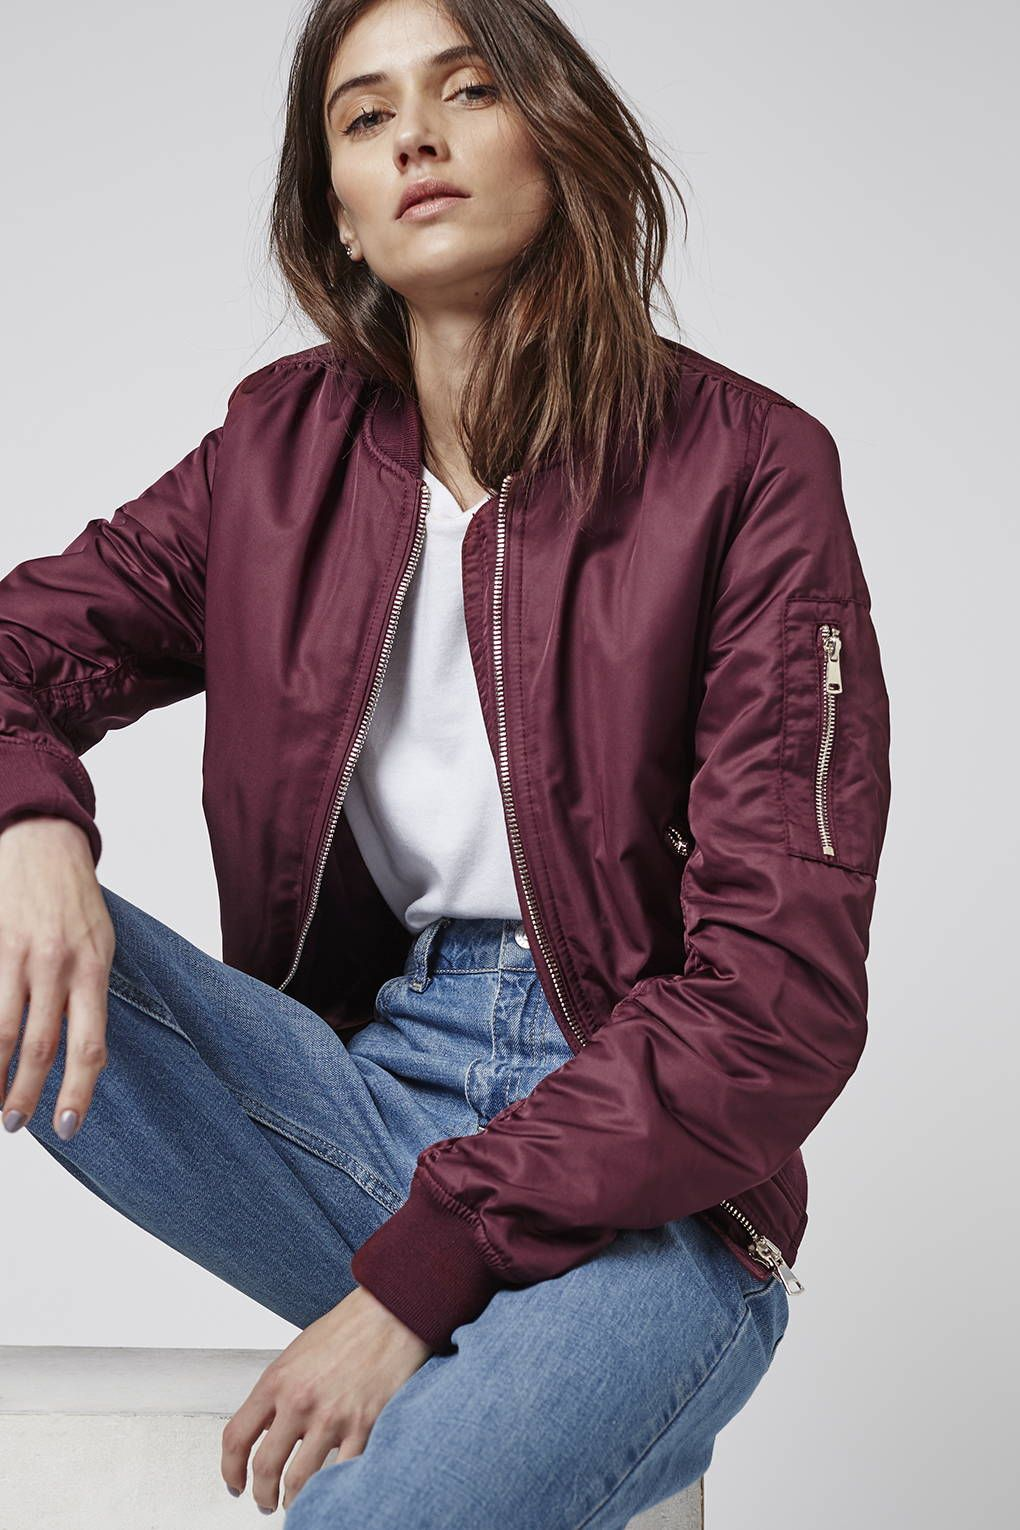 These Affordable Bomber Jackets Are So Cute (and Less Than